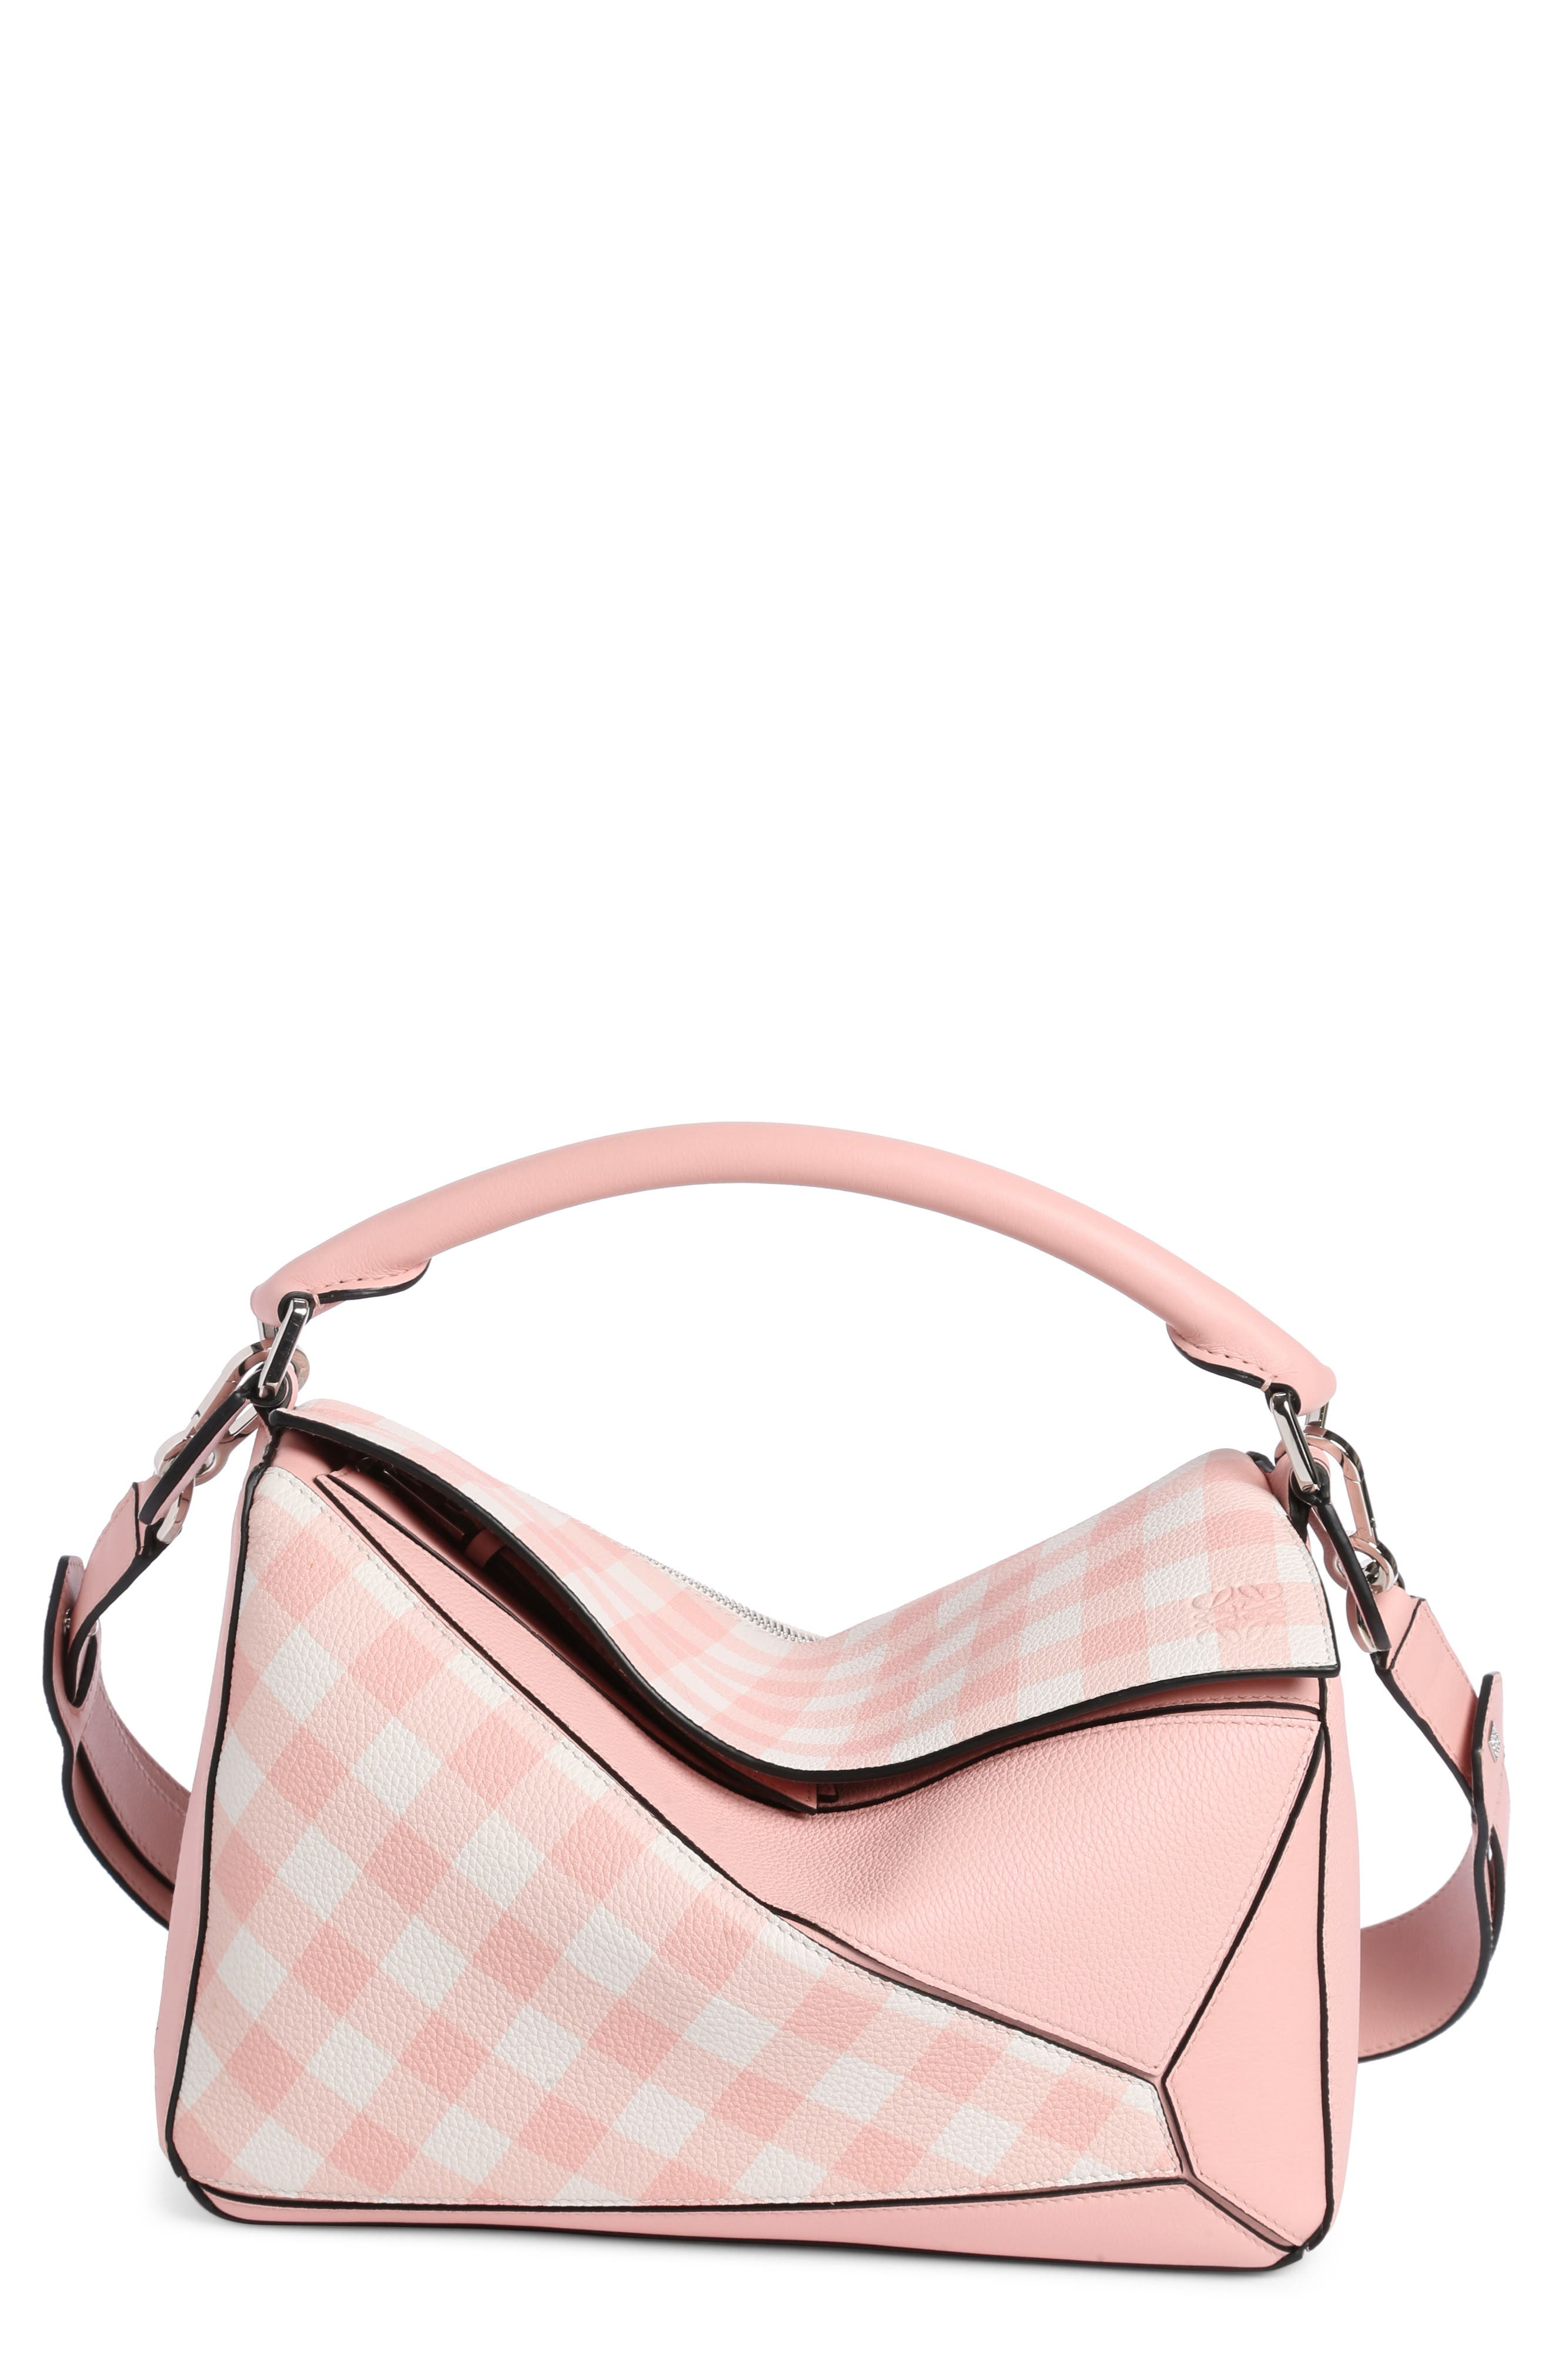 Puzzle Gingham Calfskin Leather Bag,                             Main thumbnail 1, color,                             Salmon